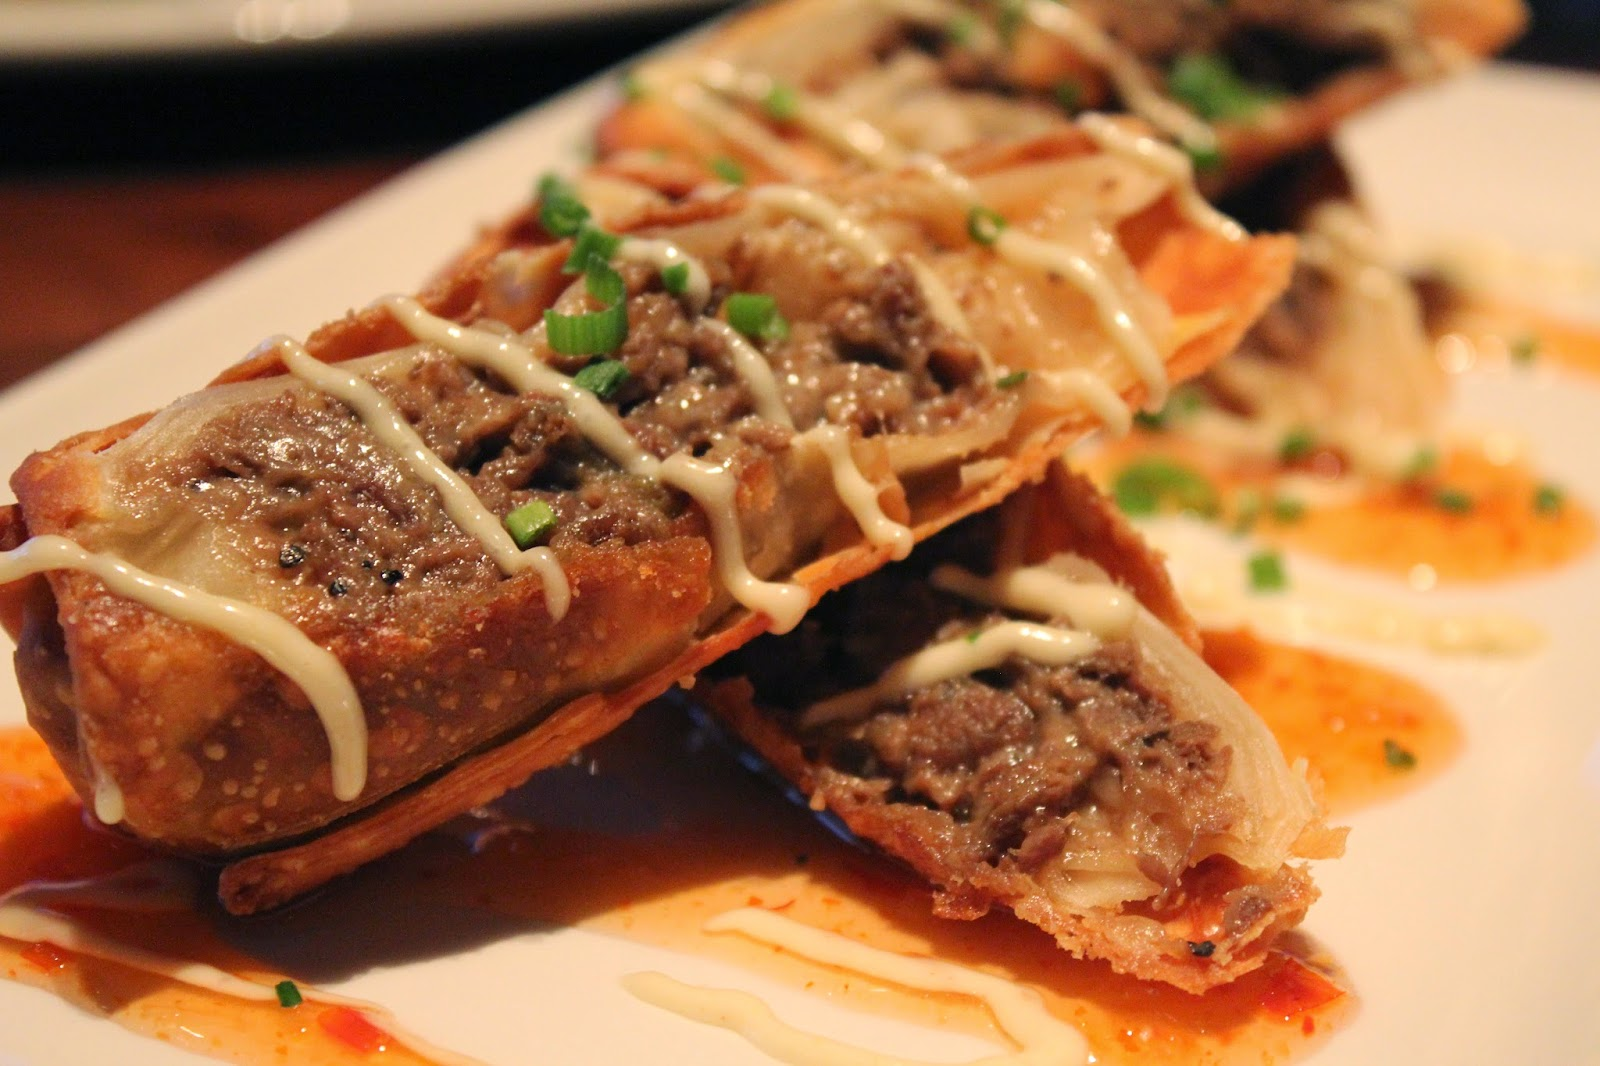 Cheesesteak egg rolls at Del Frisco's Grille